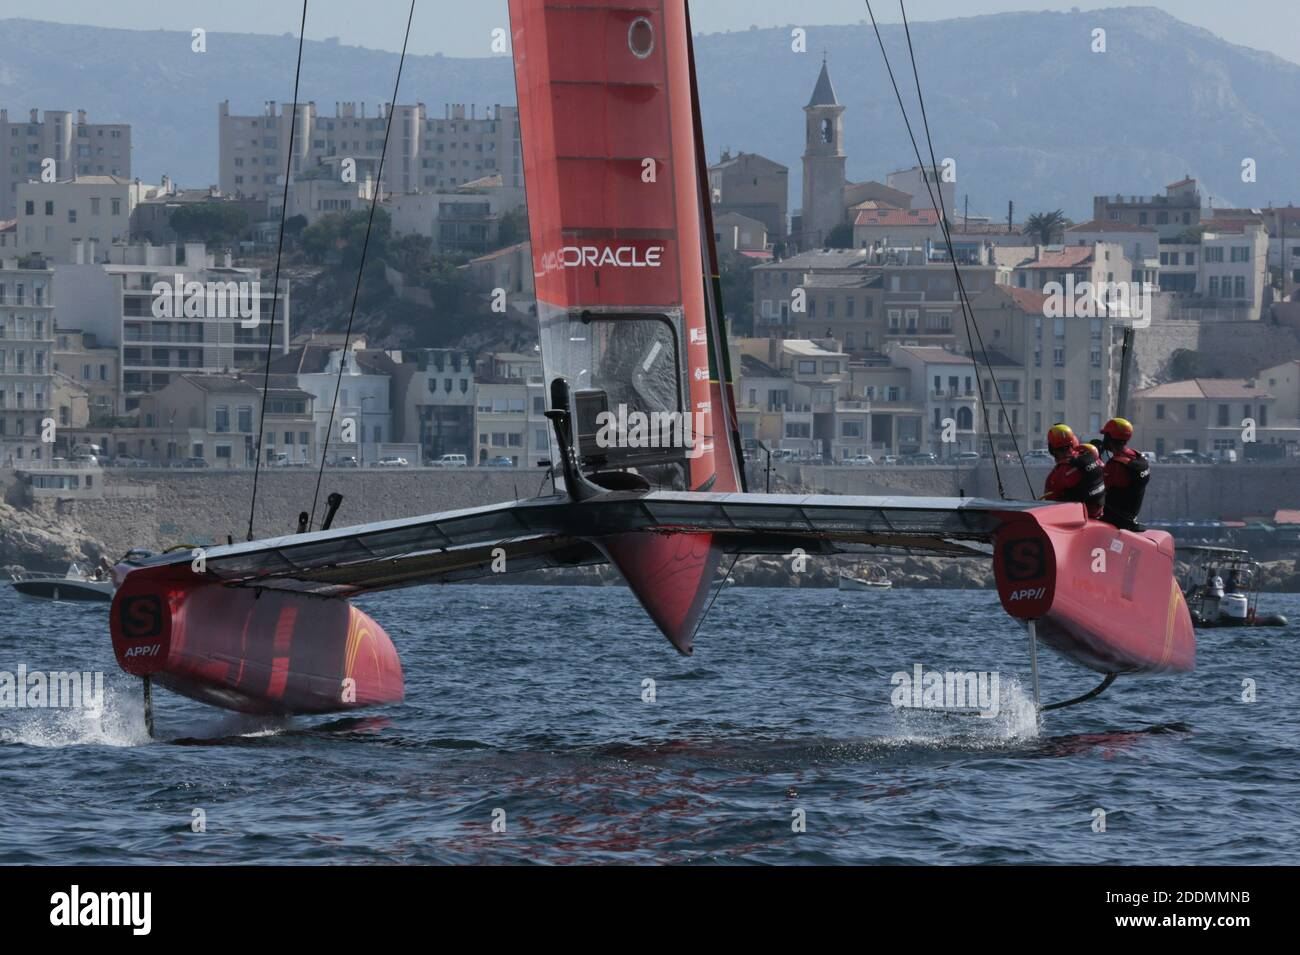 The SailGP F50 catamaran in racing during SailGP final in Marseille, France on September 19, 2019. SailGP is racing takes place in some of the most iconic harbors around the globe and culminates with a $1 million winner-takes-all match race. Rival national teams battle it out in identical supercharged F50 catamarans, engineered for intense racing at electrifying speeds exceeding 50 knots (nearly 60 mph/100 kph) and Marseille is the final event. Photo by Patrick Aventurier/ABACAPRESS.COM Stock Photo